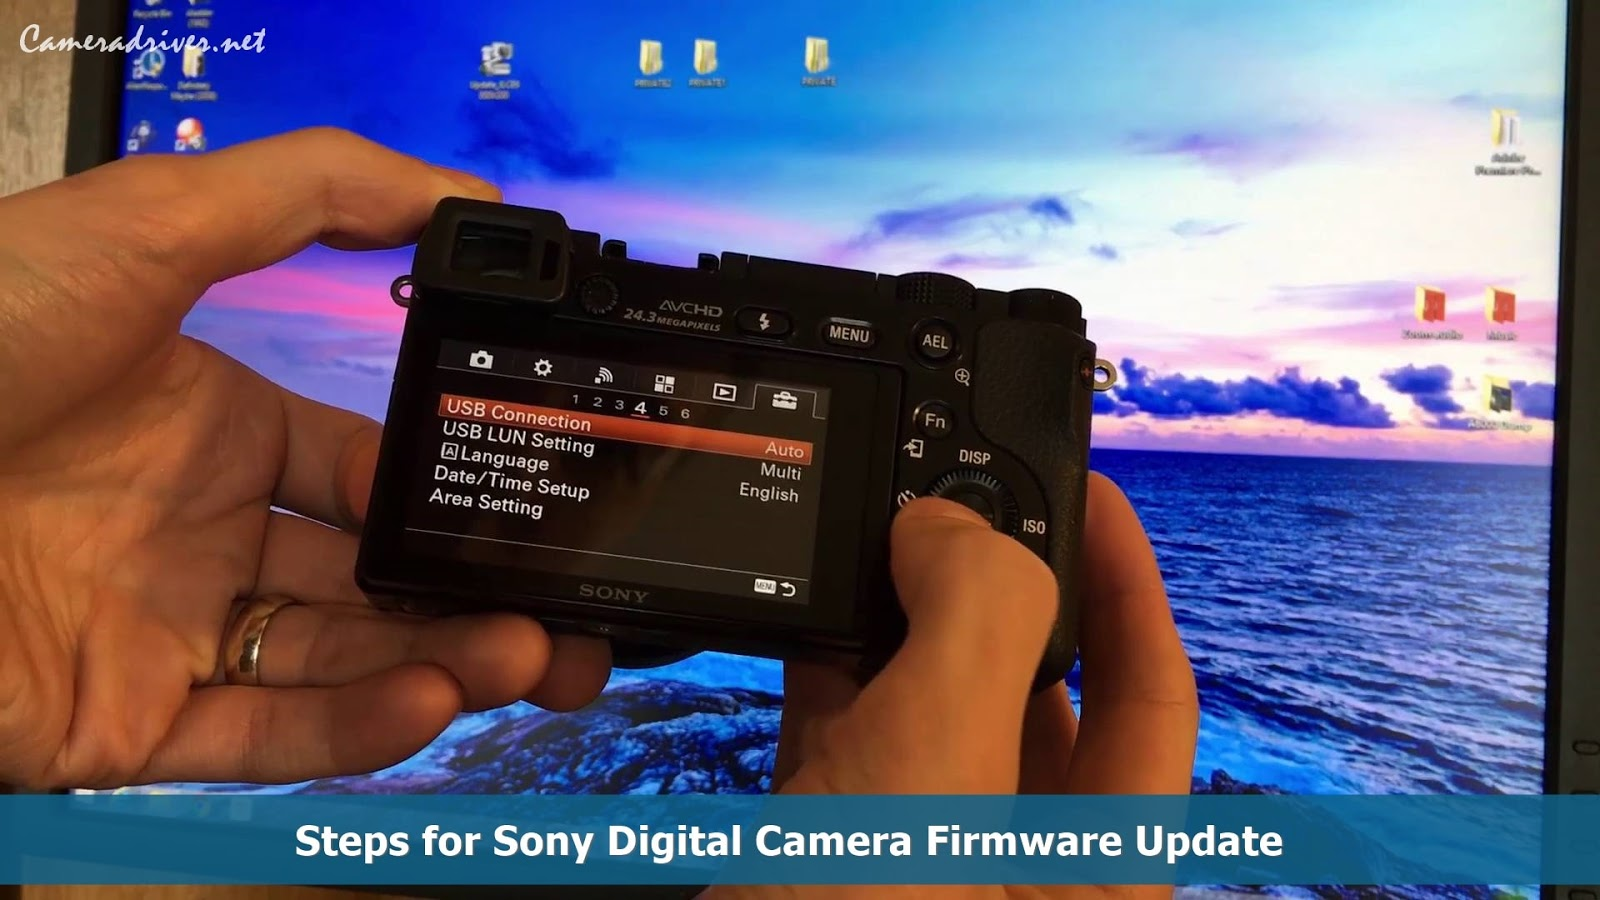 Sony Digital Camera Firmware Update